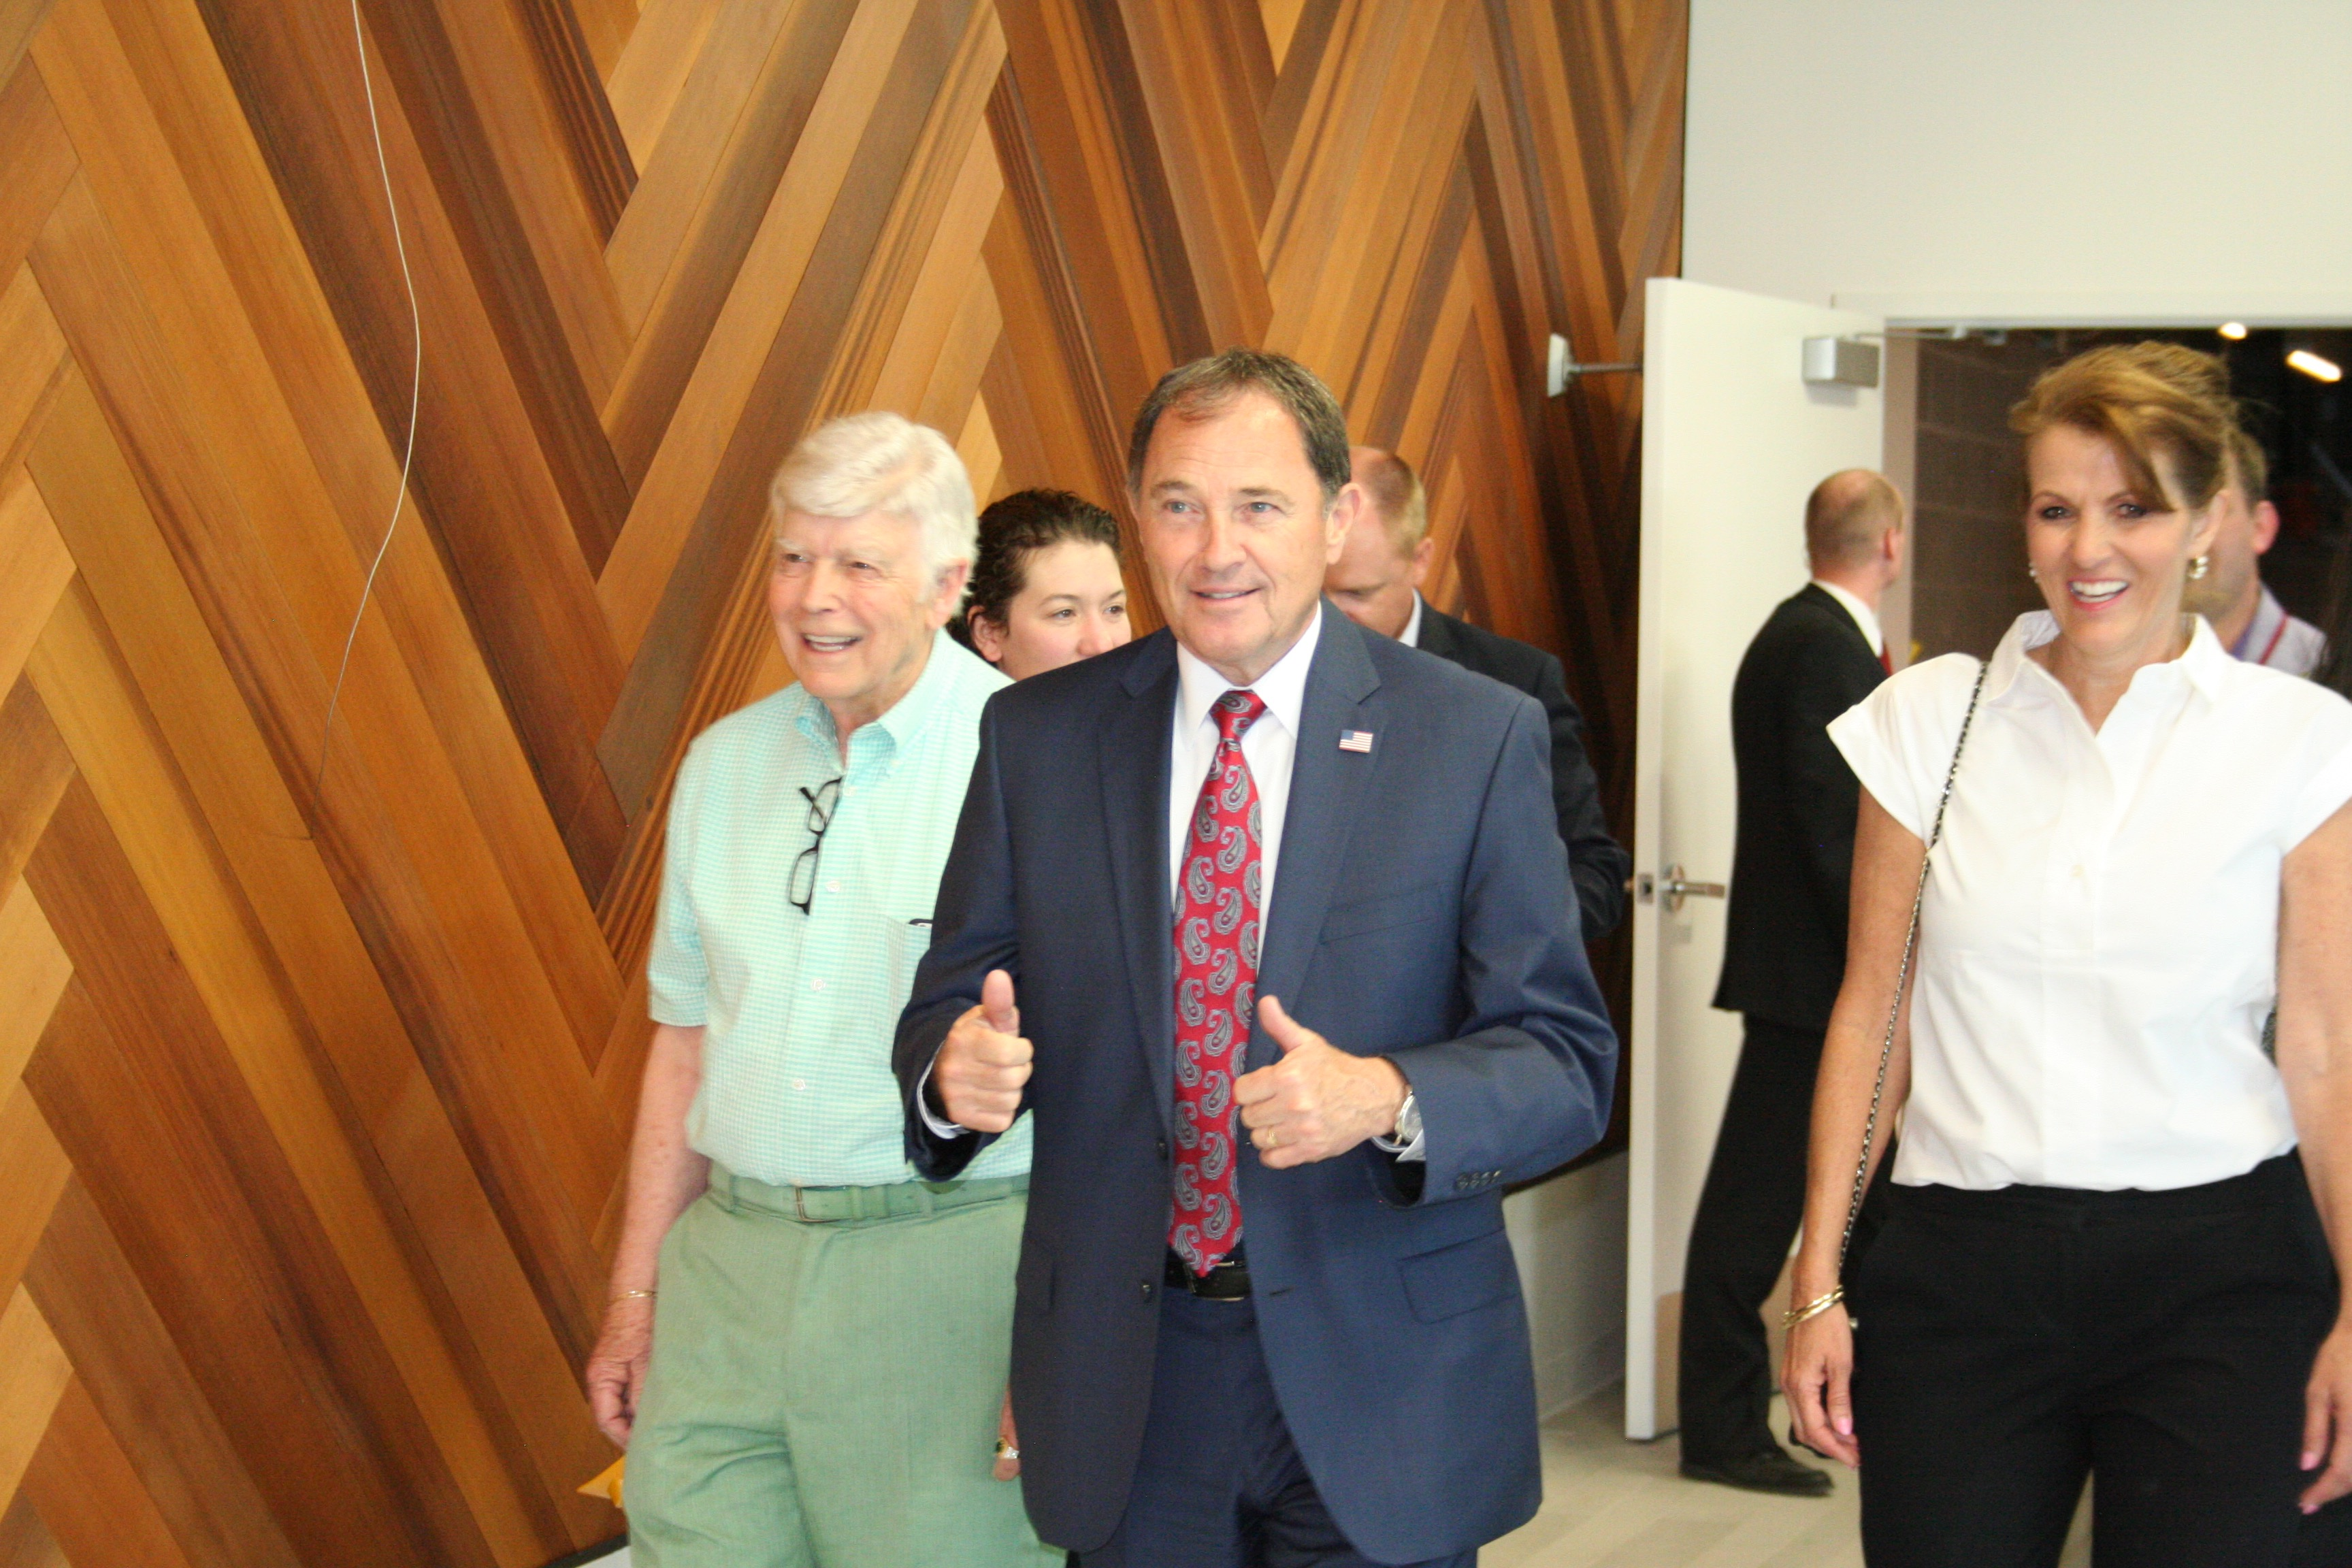 Gov. Herbert (right) with Utah Shakespeare Festival founder Fred Adams (left) touring The Beverley Taylor Sorenson Center for the Arts on the campus of Southern Utah University in anticipation of opening celebration planned for July, Cedar City, Utah, June 9, 2016 | Photo by Kaleigh Bronson, St. George News / Cedar City News